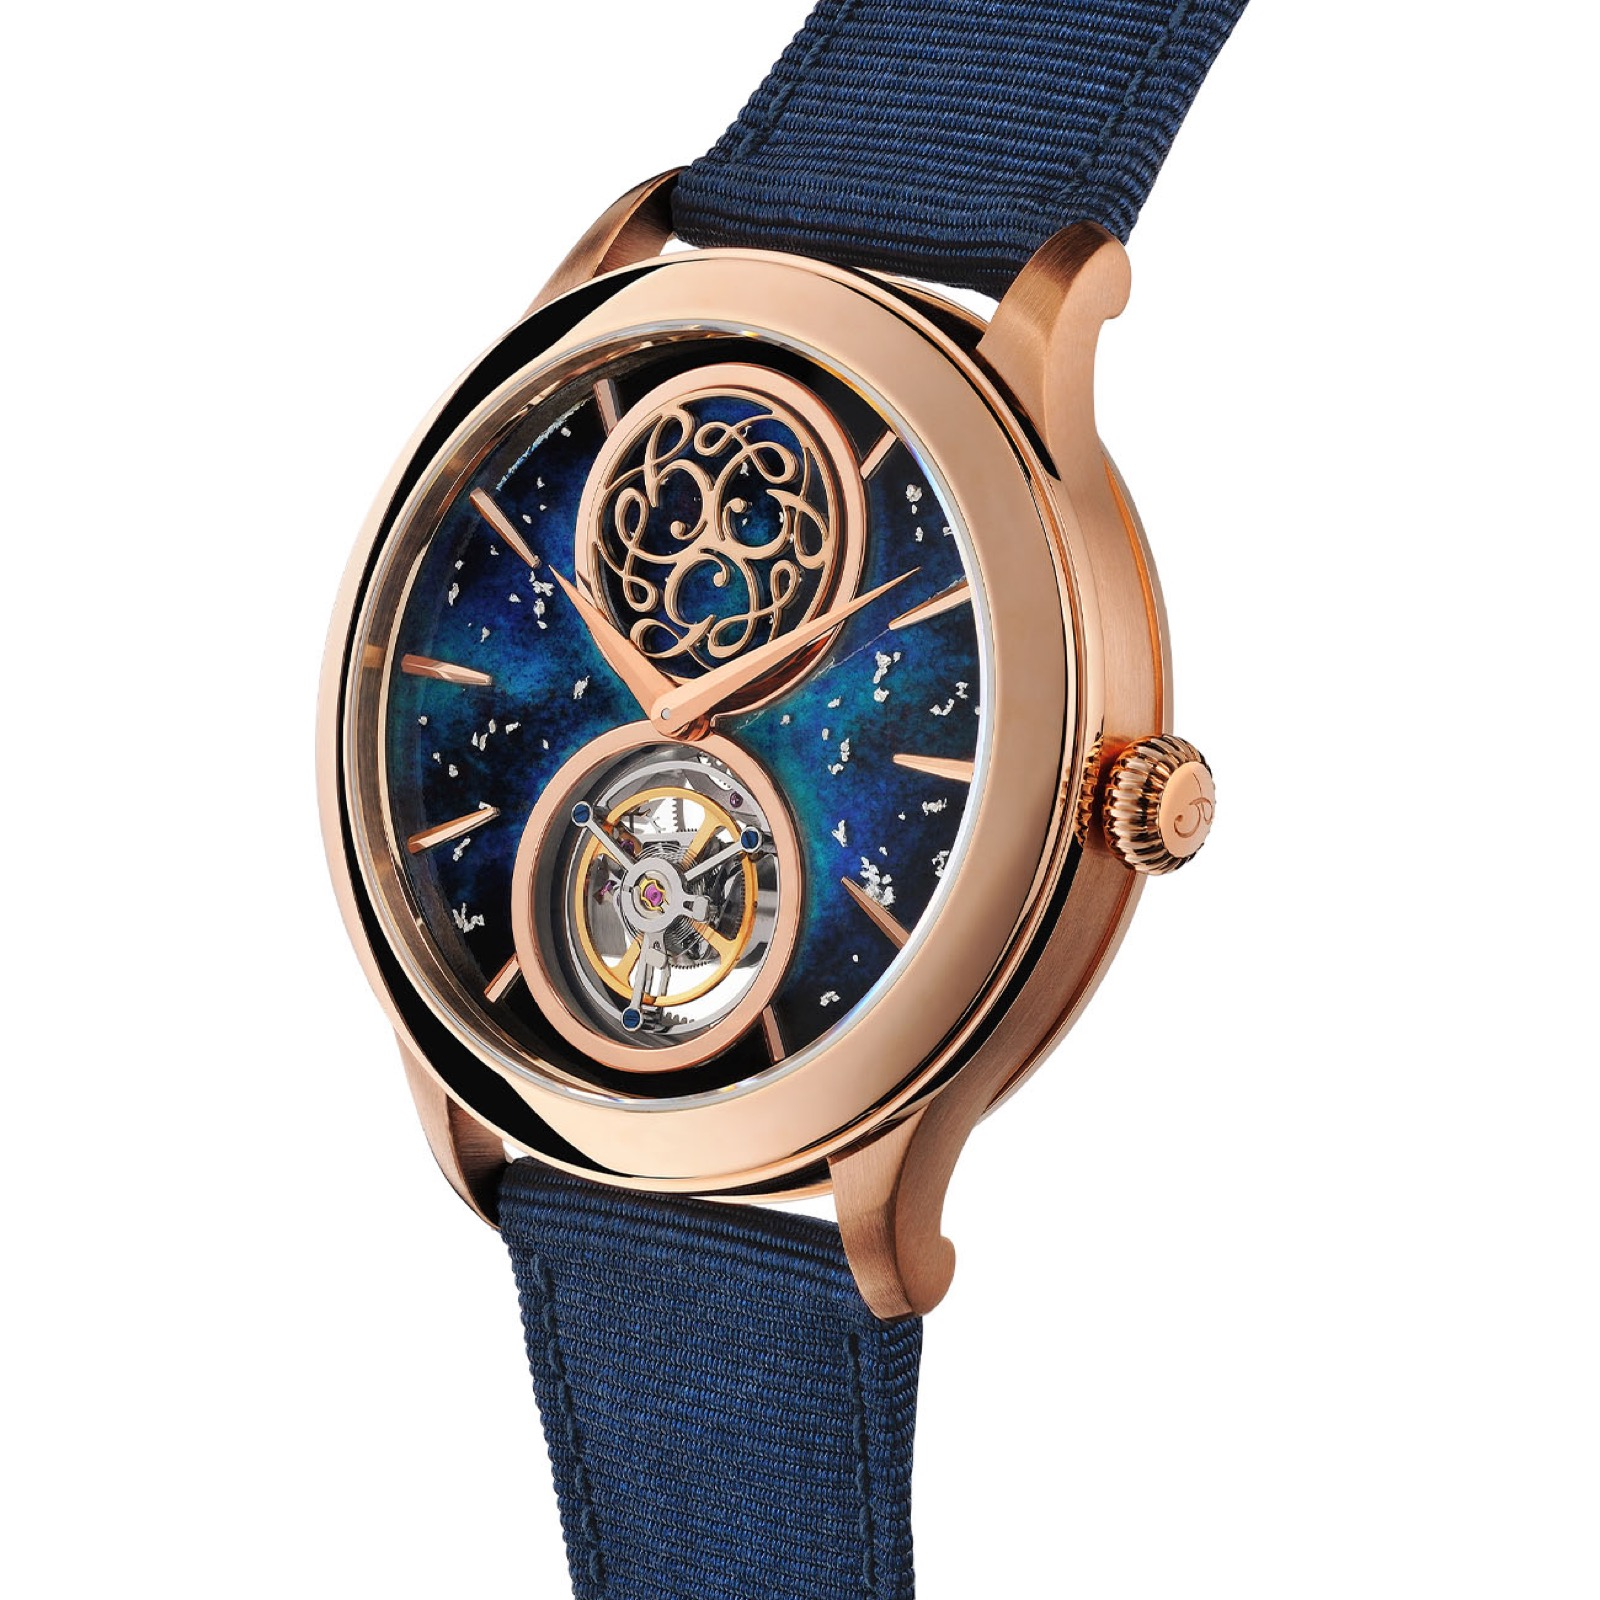 charles-girardier-only-watch-2021